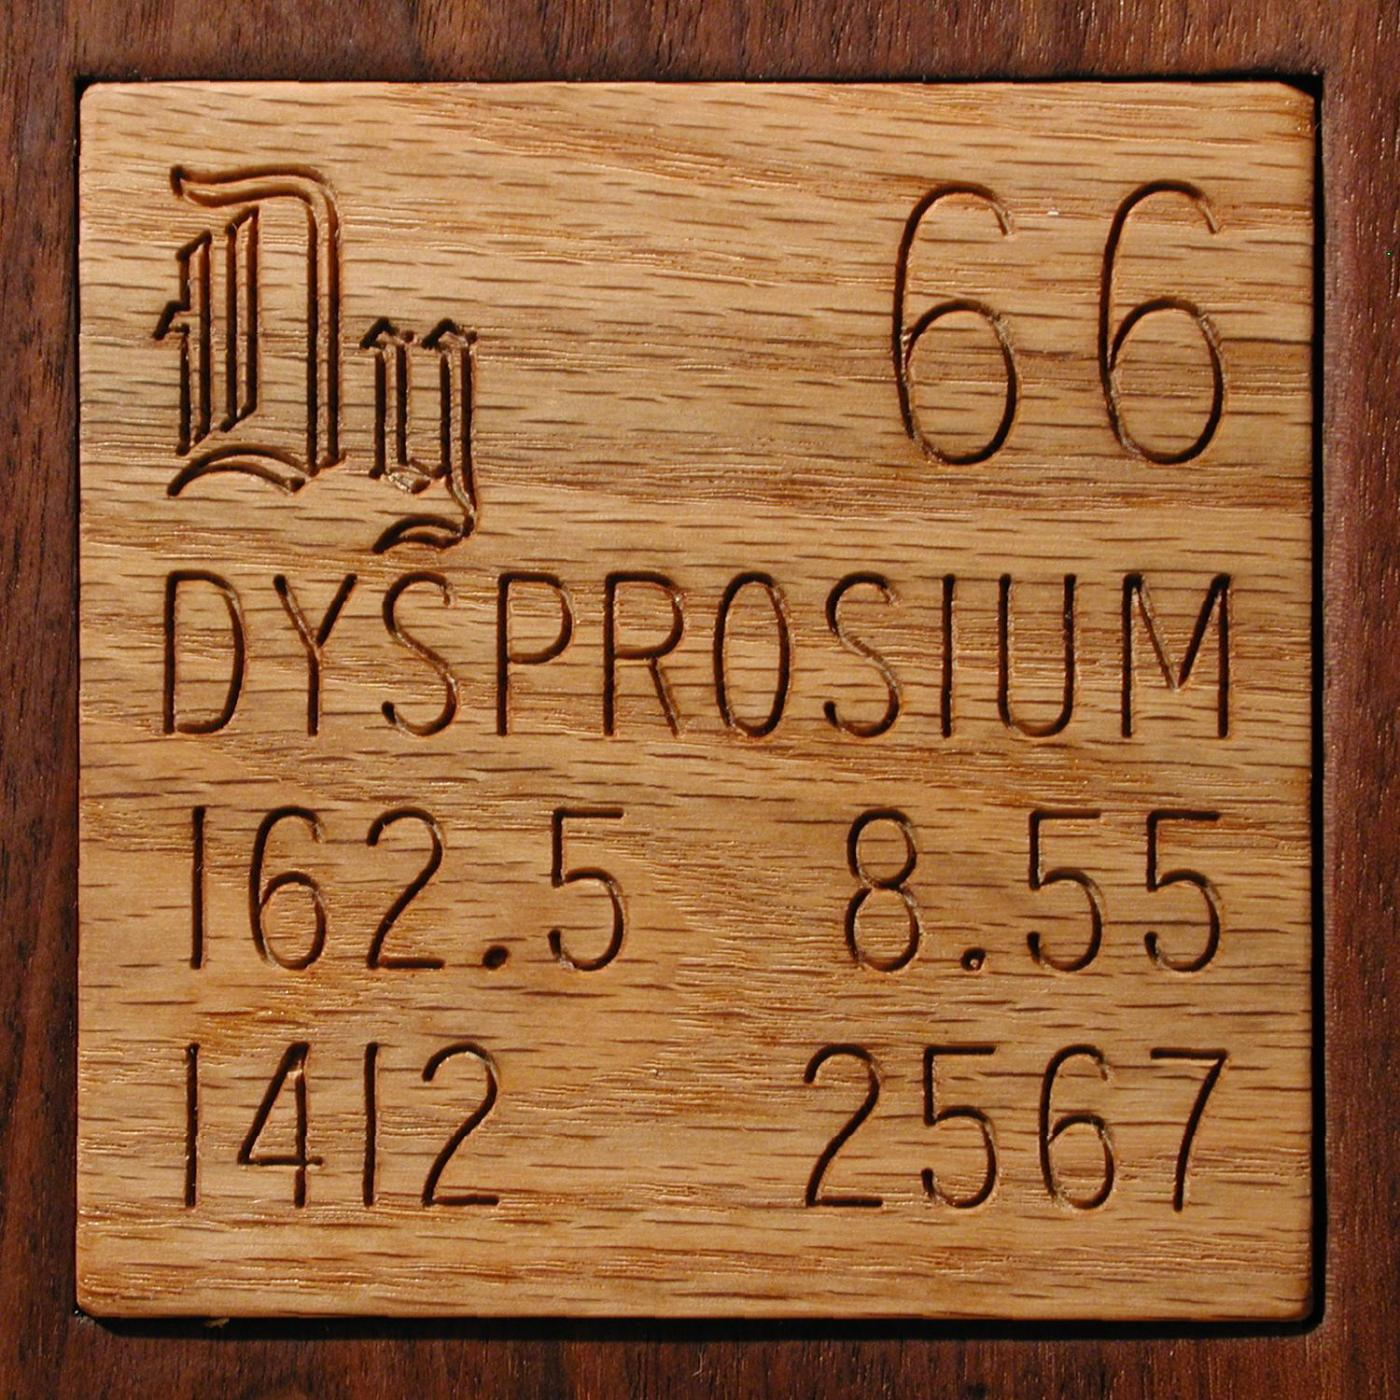 Technical Data For The Element Dysprosium In The Periodic Table